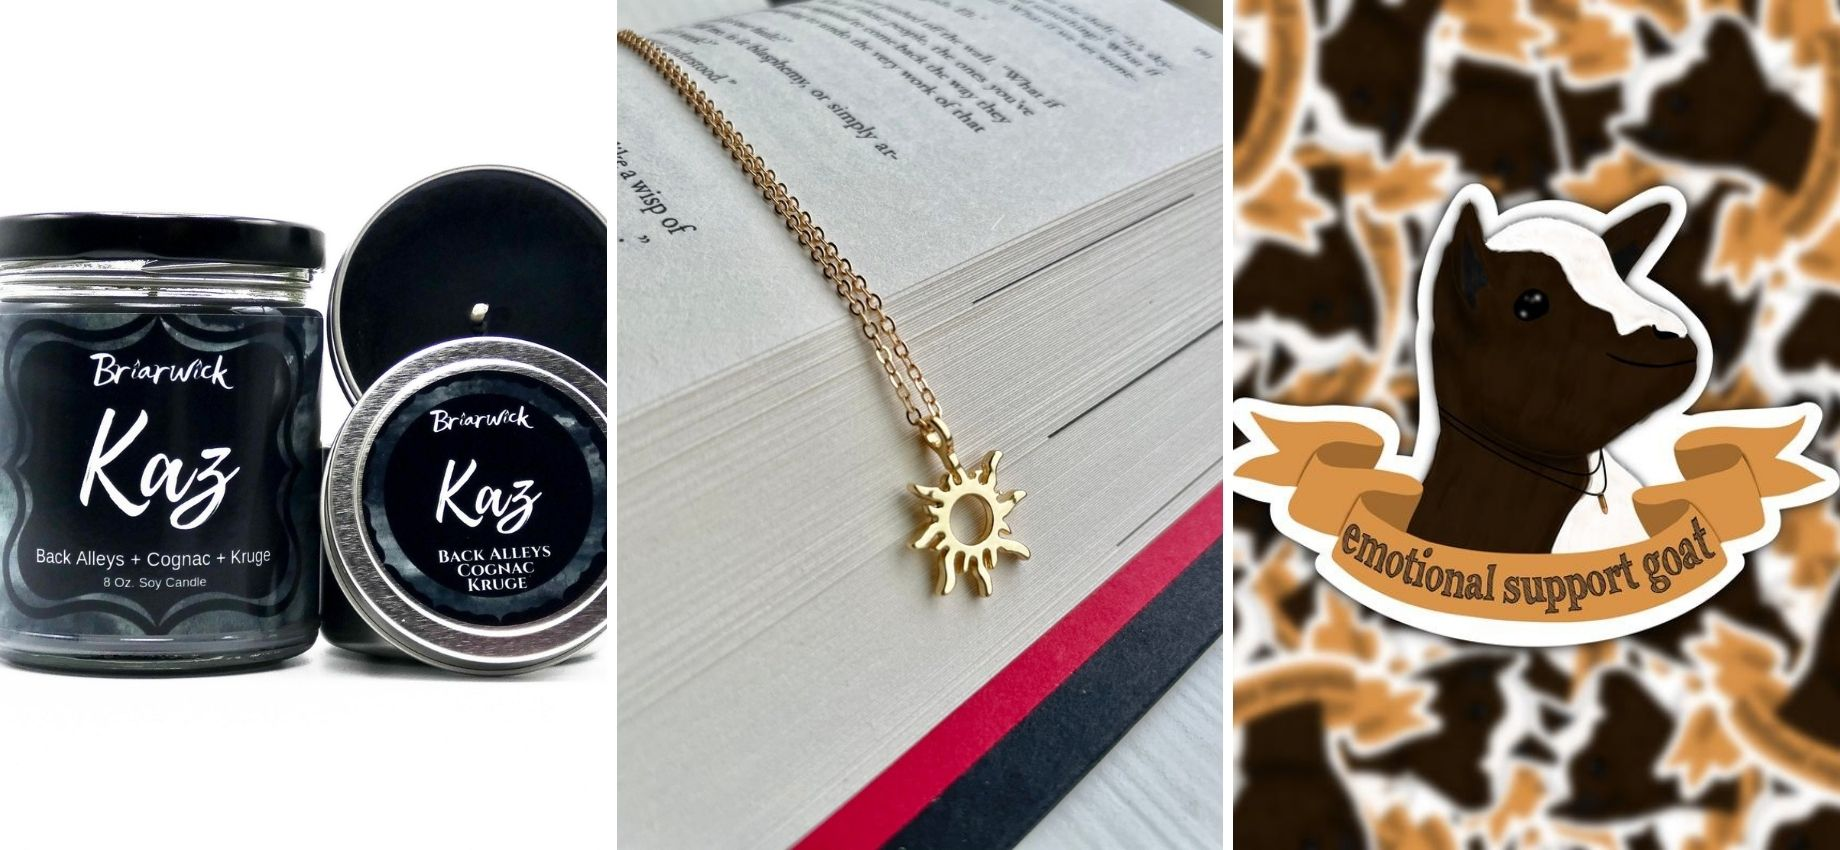 7 'Shadow and Bone' Themed Items You Should Check Out on Etsy